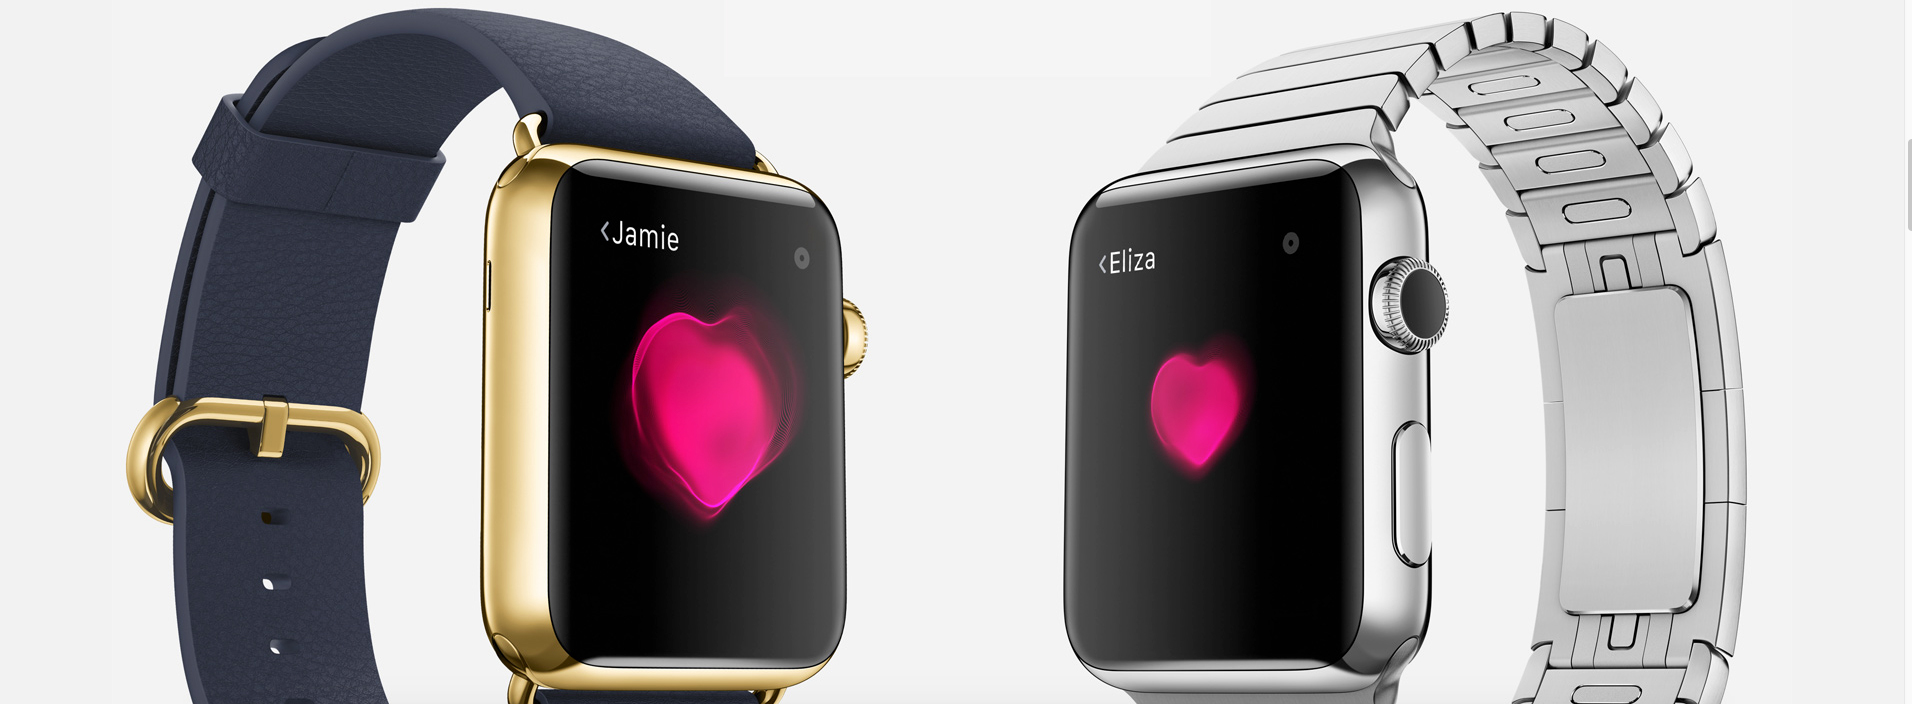 Apple Watch sales peaked on the first day of preorders and have been fairly consistent since